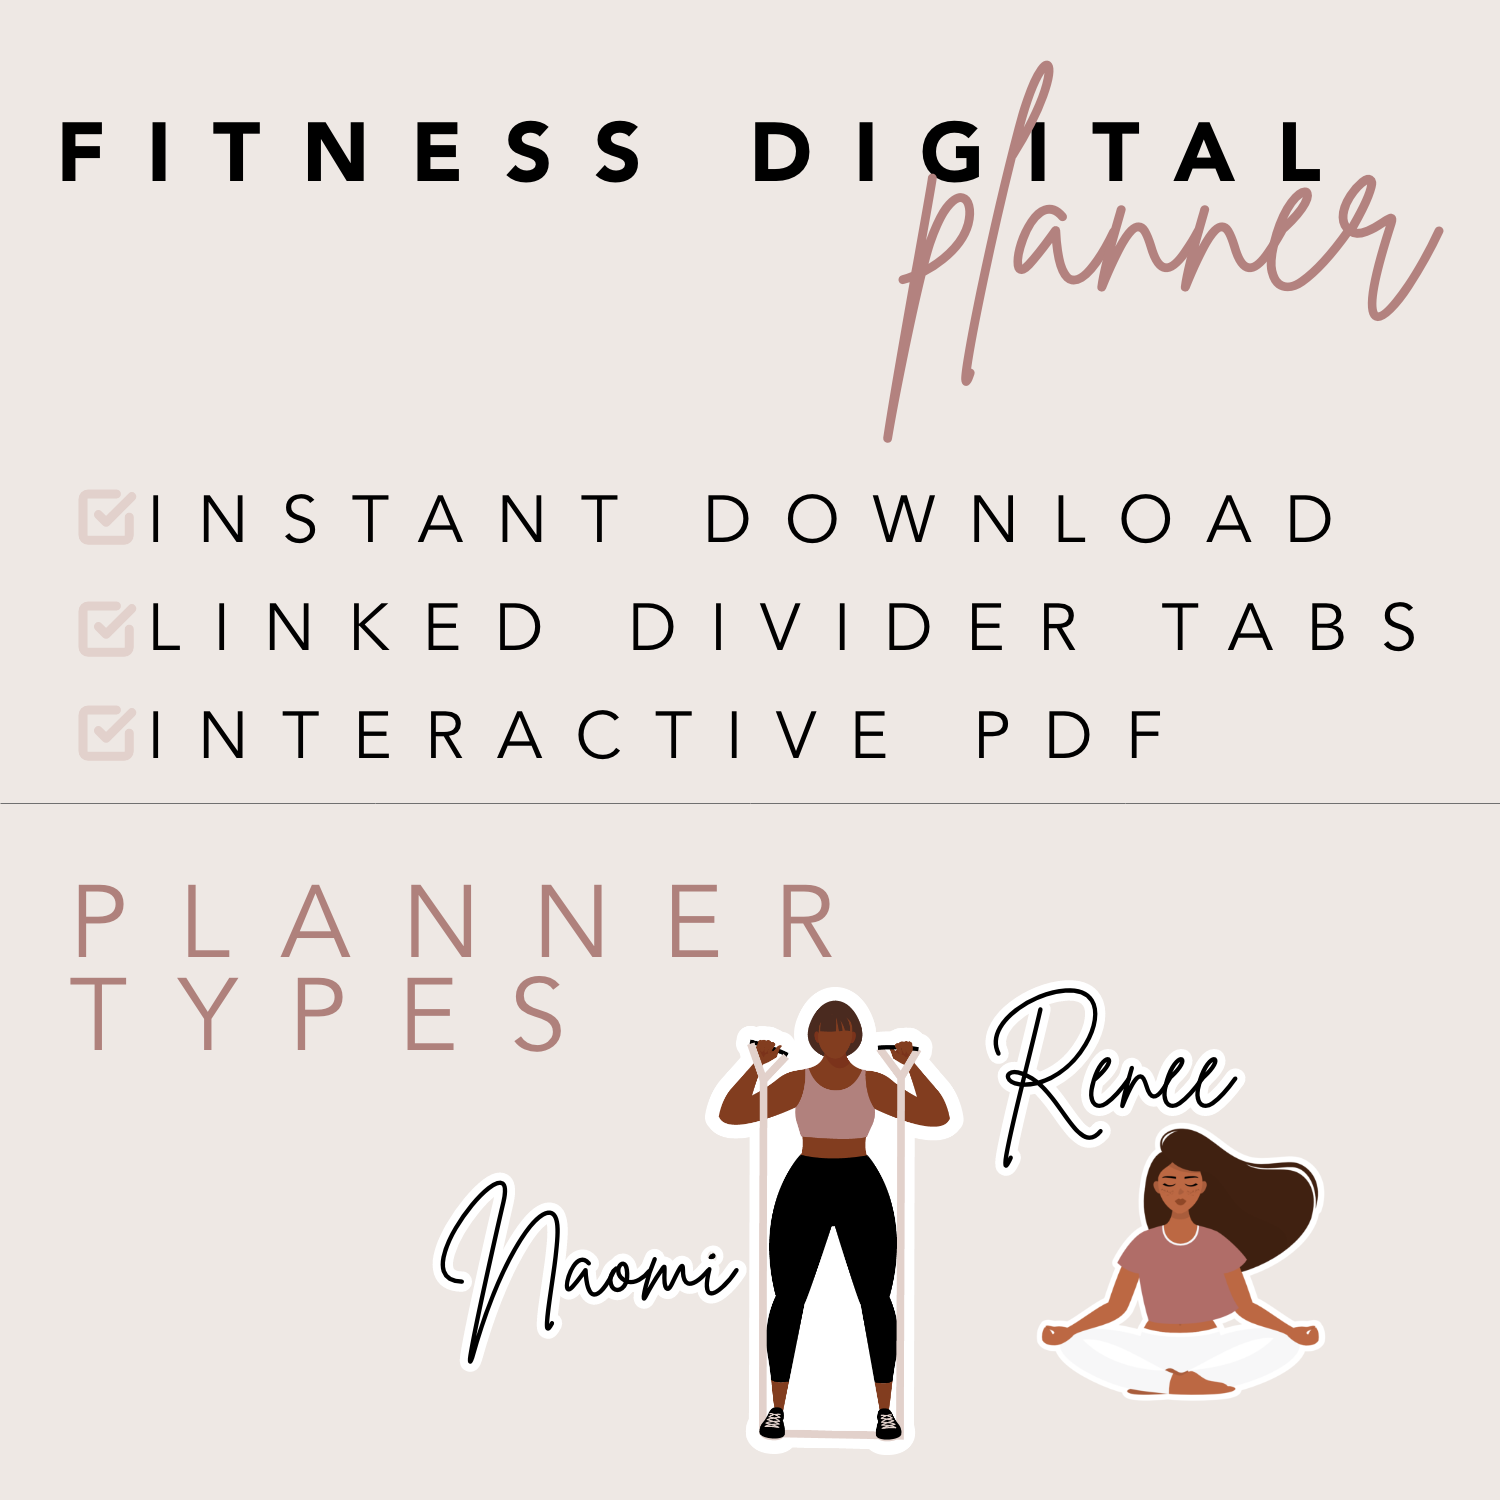 Fitness Digital Planner